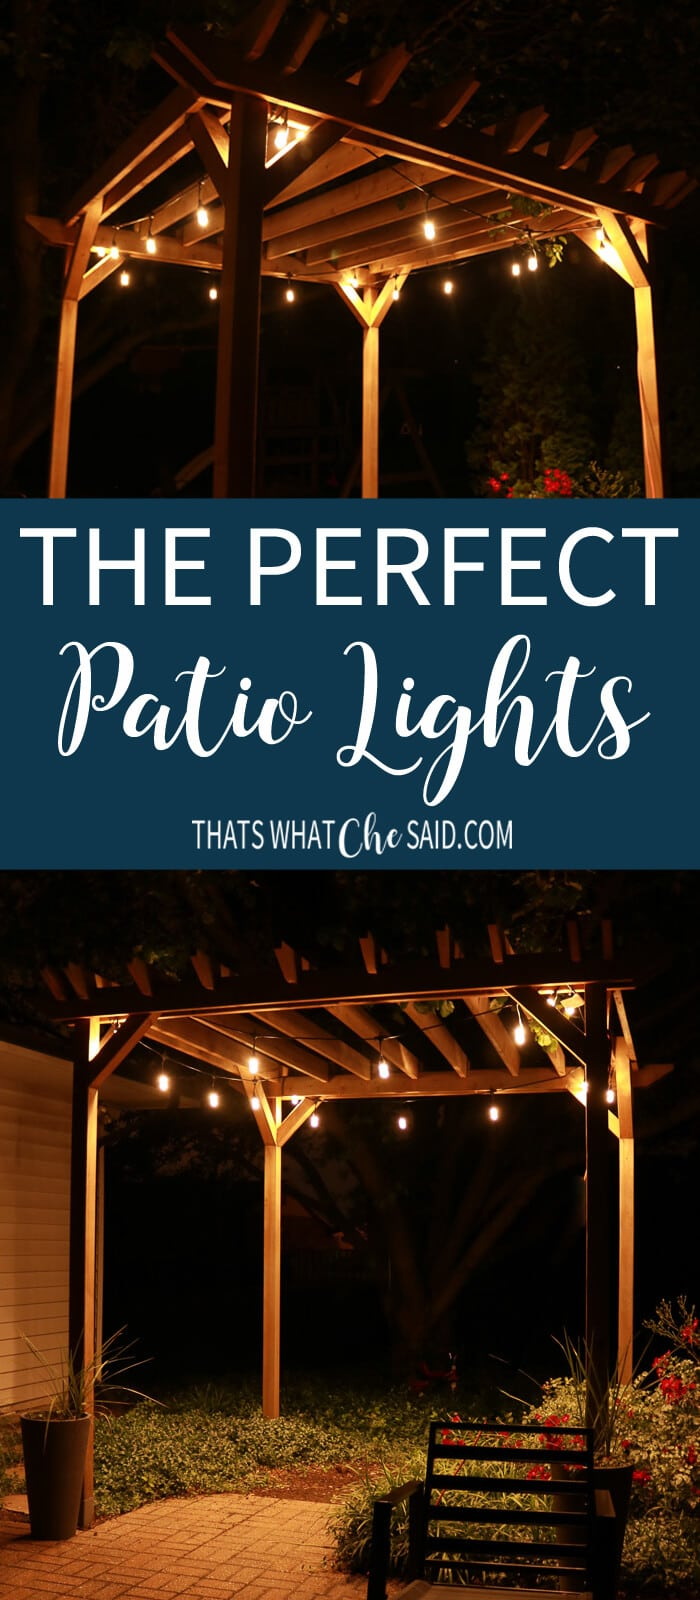 The Perfect Patio Lights